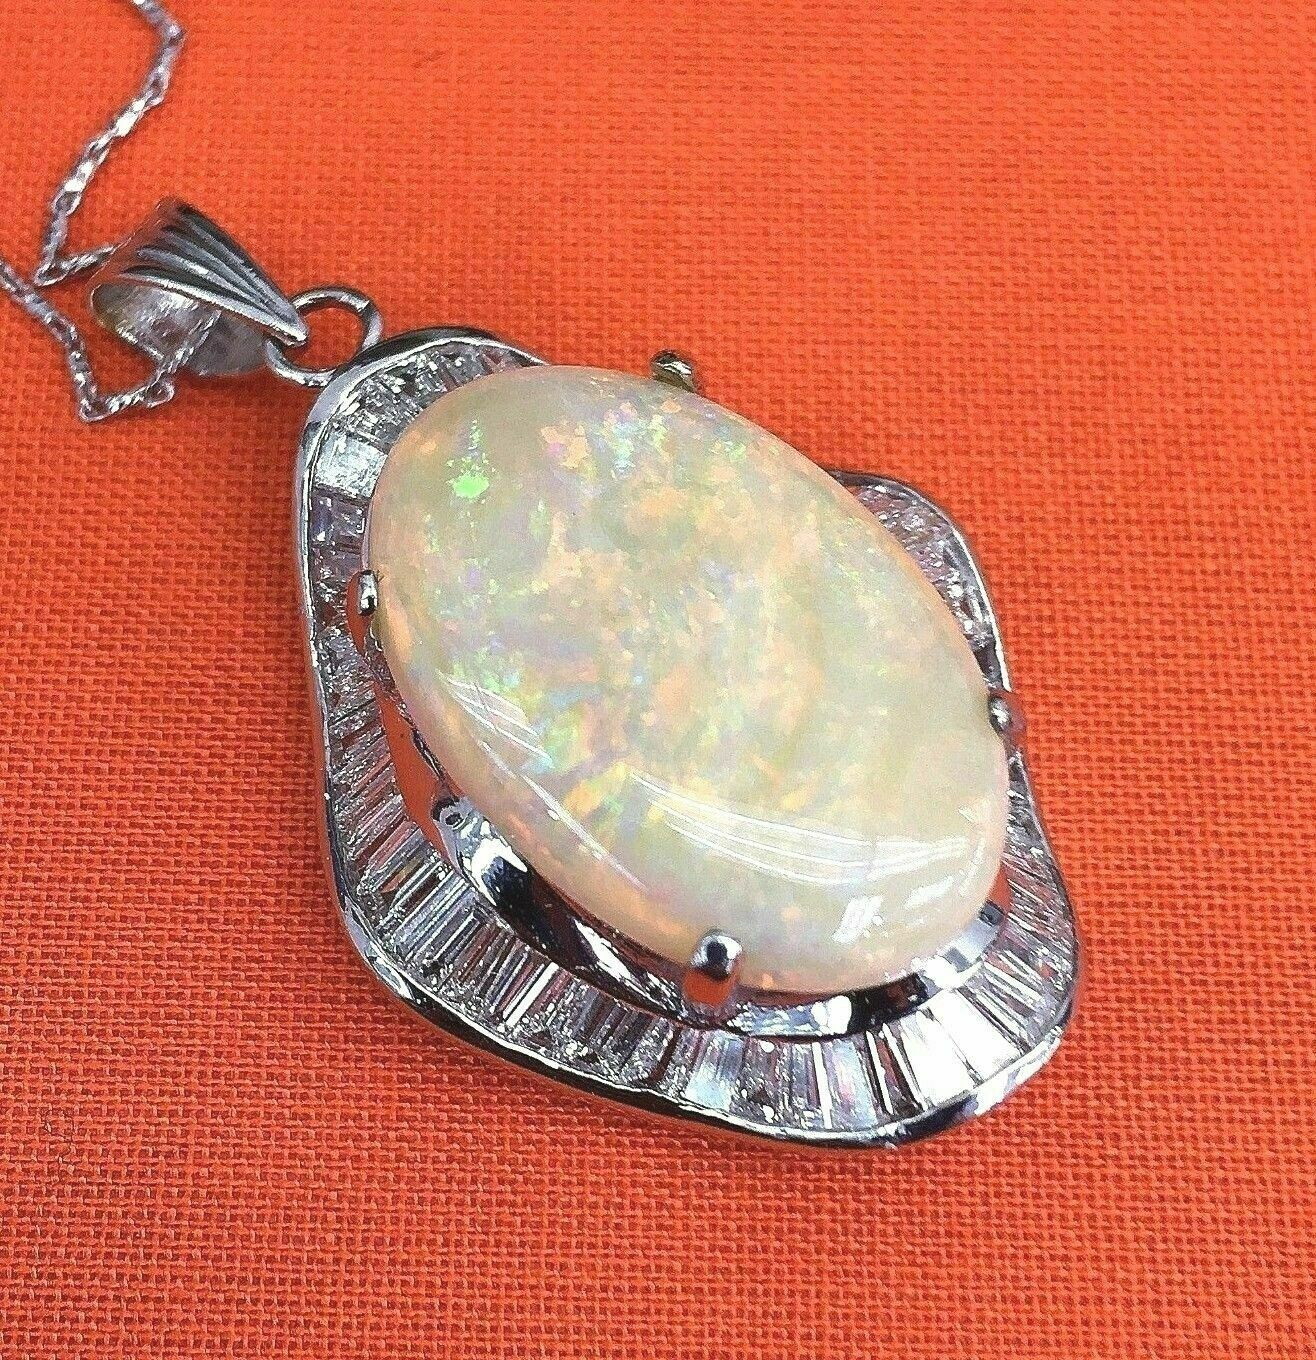 16.20 Carats t.w. Diamond and Opal Pendant w Chain 6 Carats of Baguette Diamonds